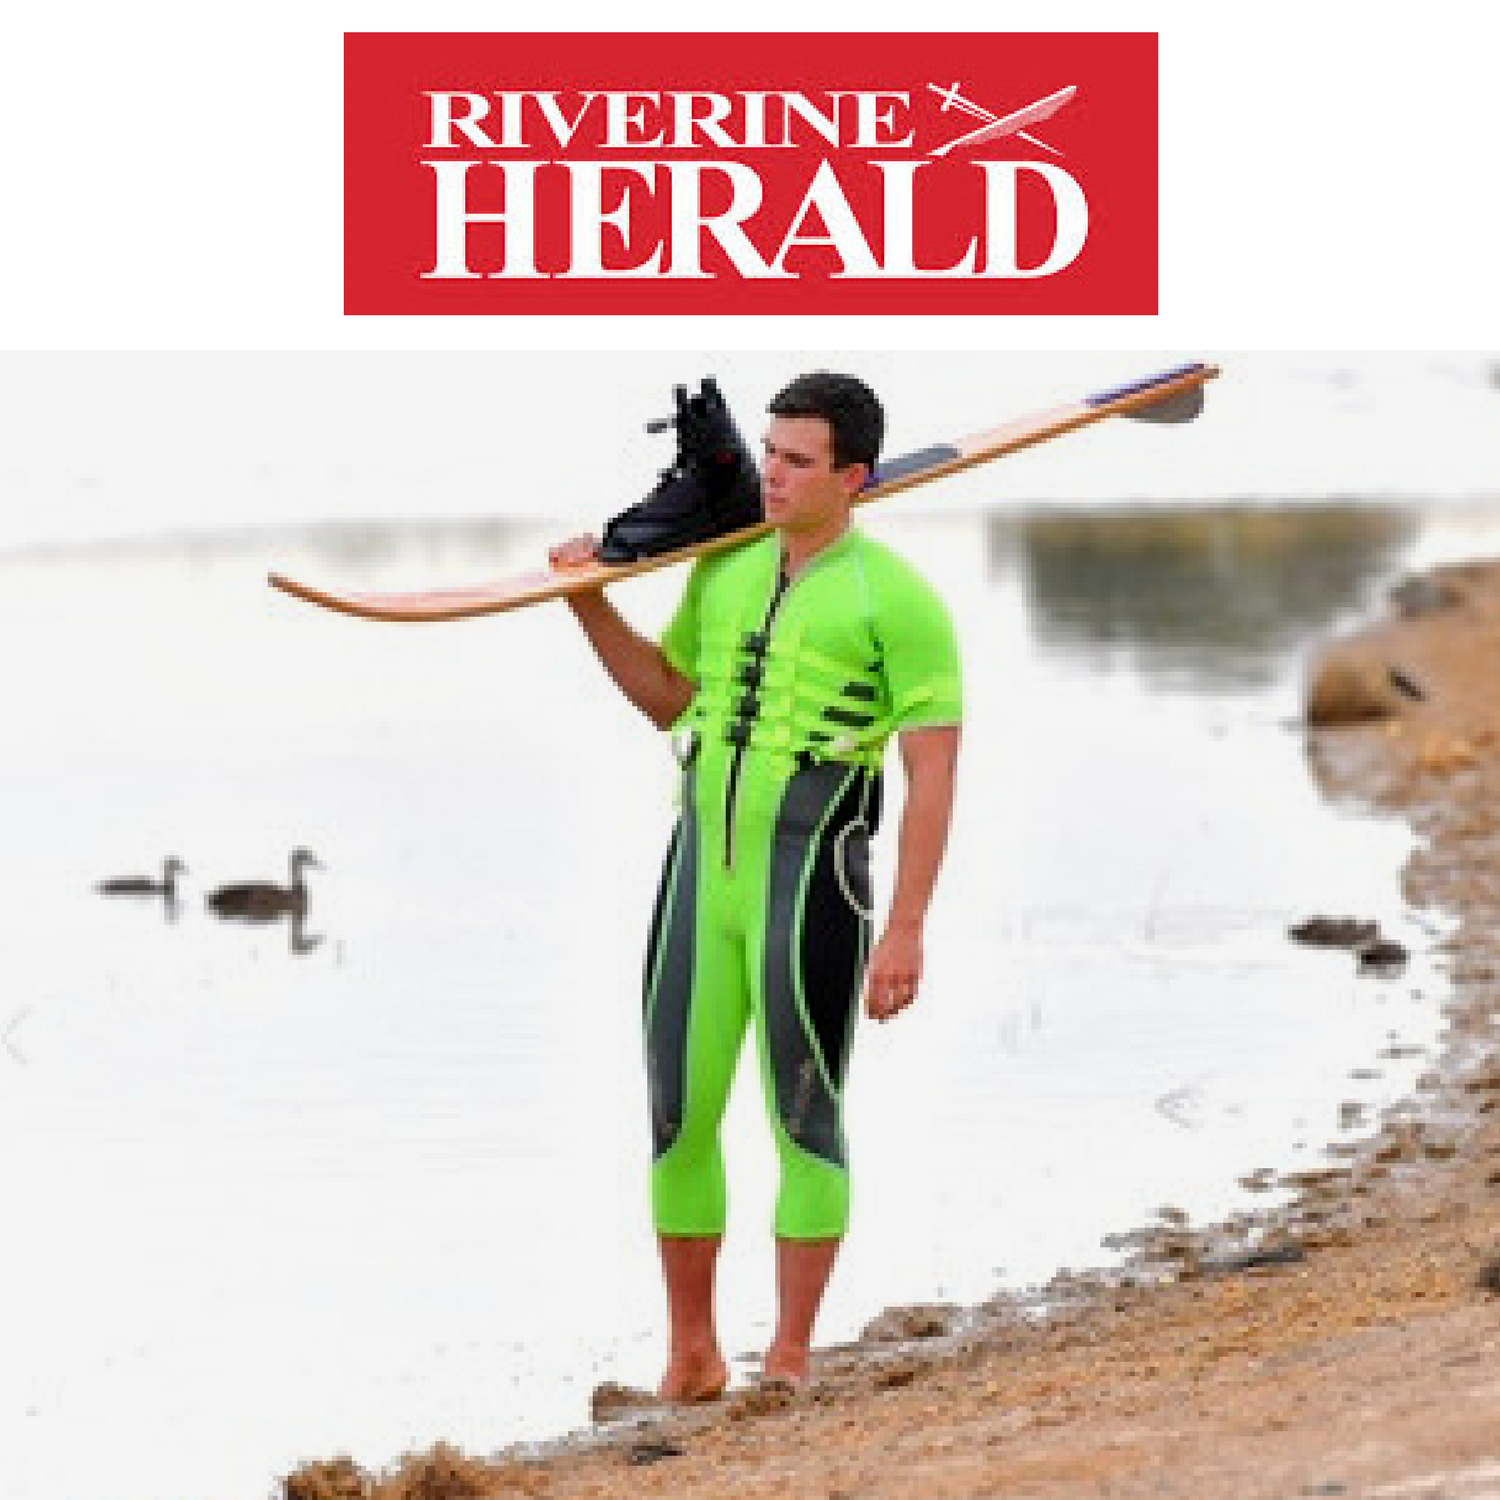 BLIND SKIERS DEBUT MAKES HIM A STAR OF THE SOUTHERN 80 - BY RIVERINE HERALD